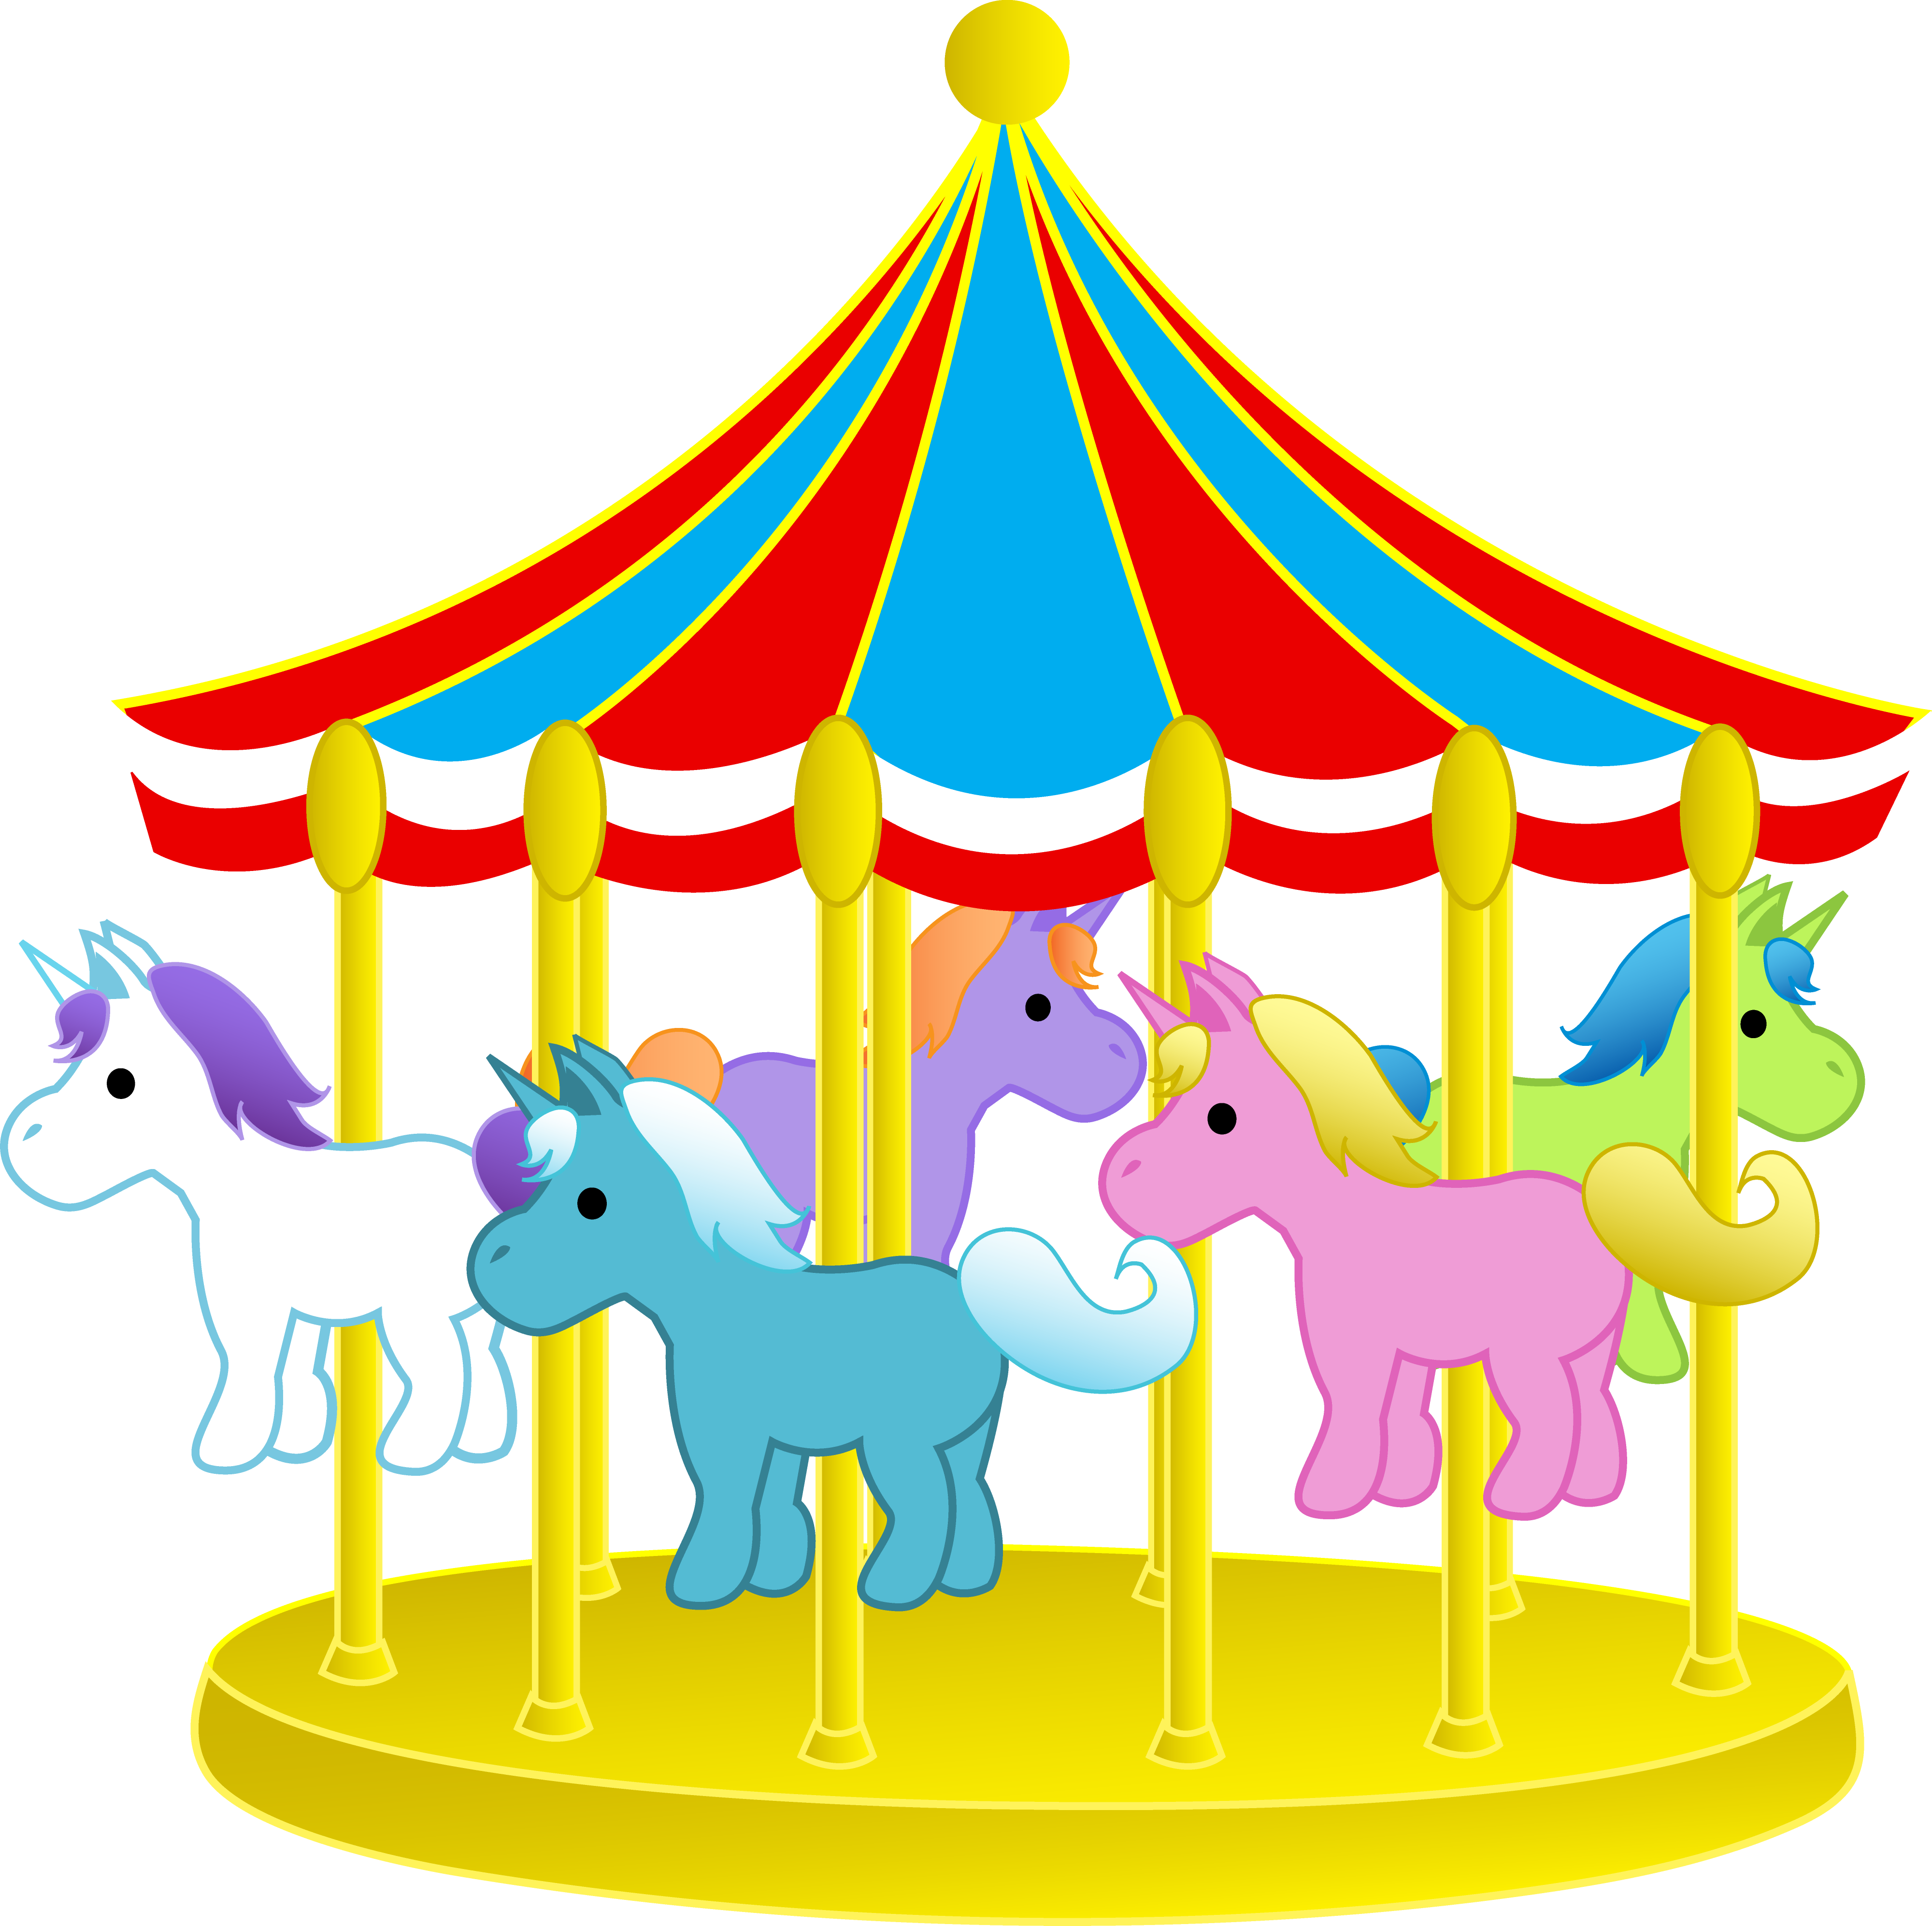 Cute Carnival Carousel With Ponies - Fre-Cute Carnival Carousel With Ponies - Free Clip Art. Amusement Park Clip Art - Clipart-9